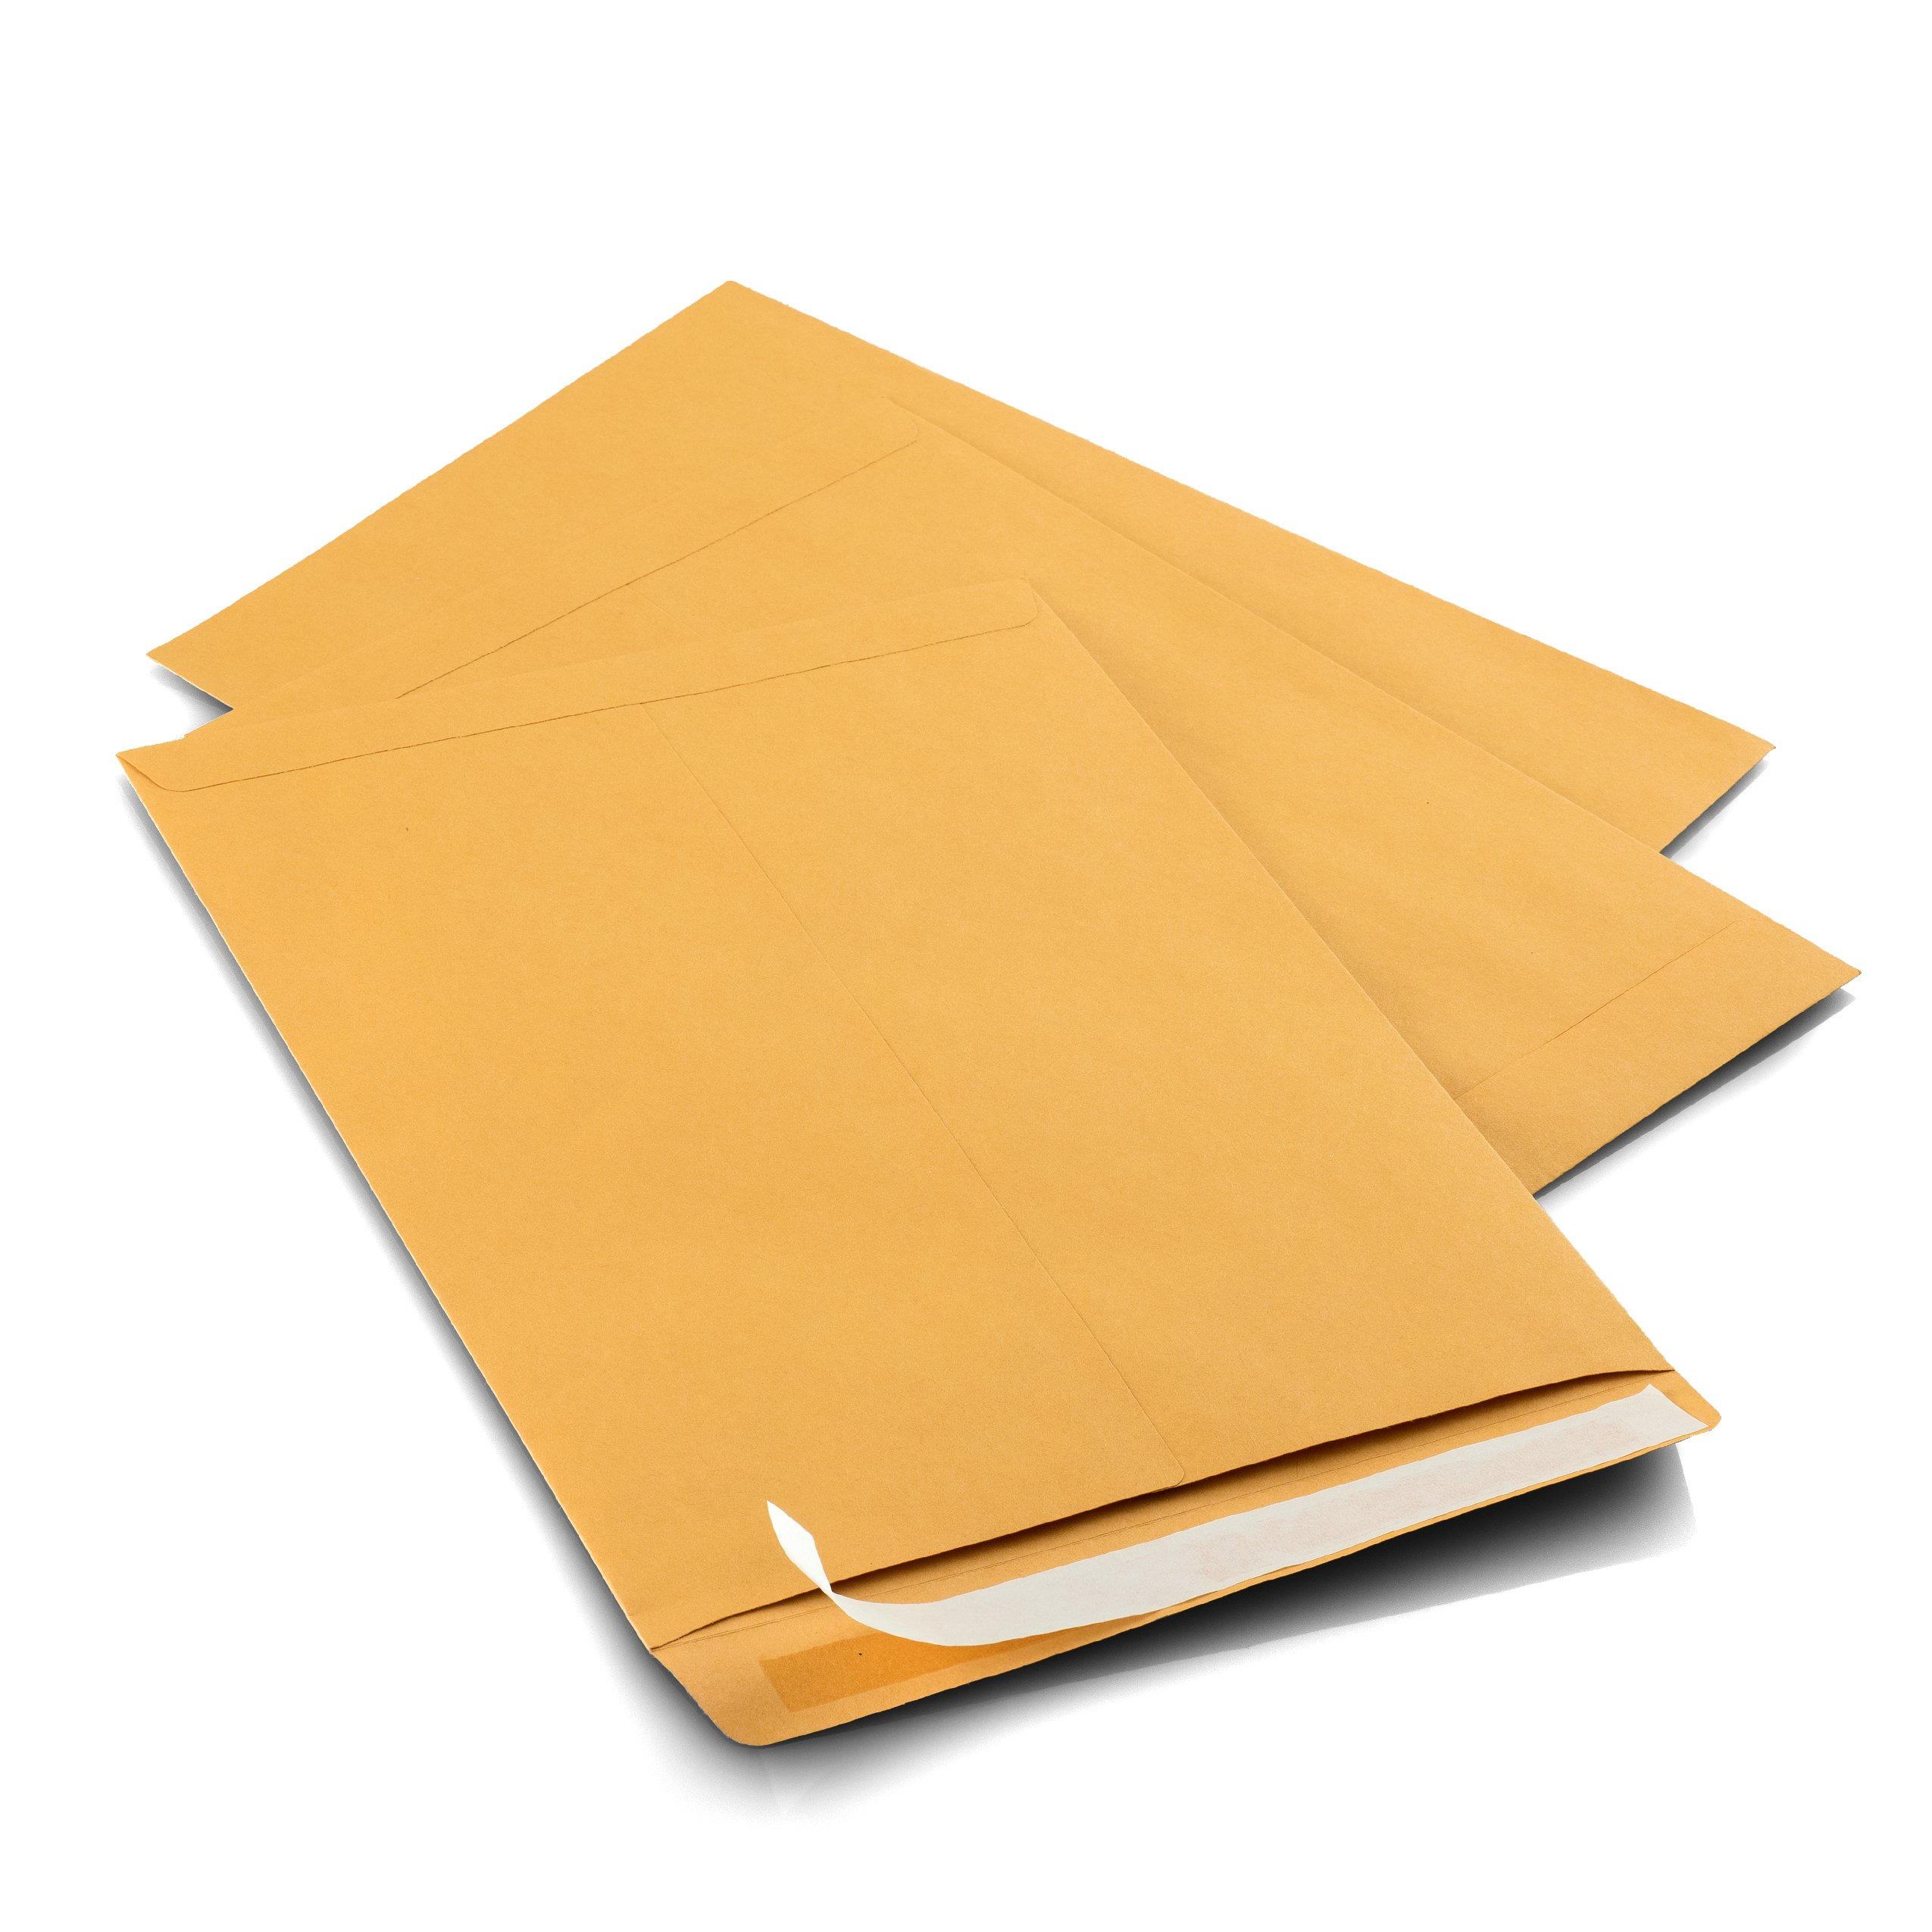 9 X 12 Self-Seal Brown Kraft Catalog Envelopes - 28lb - 360 Count (38360) by Aimoh